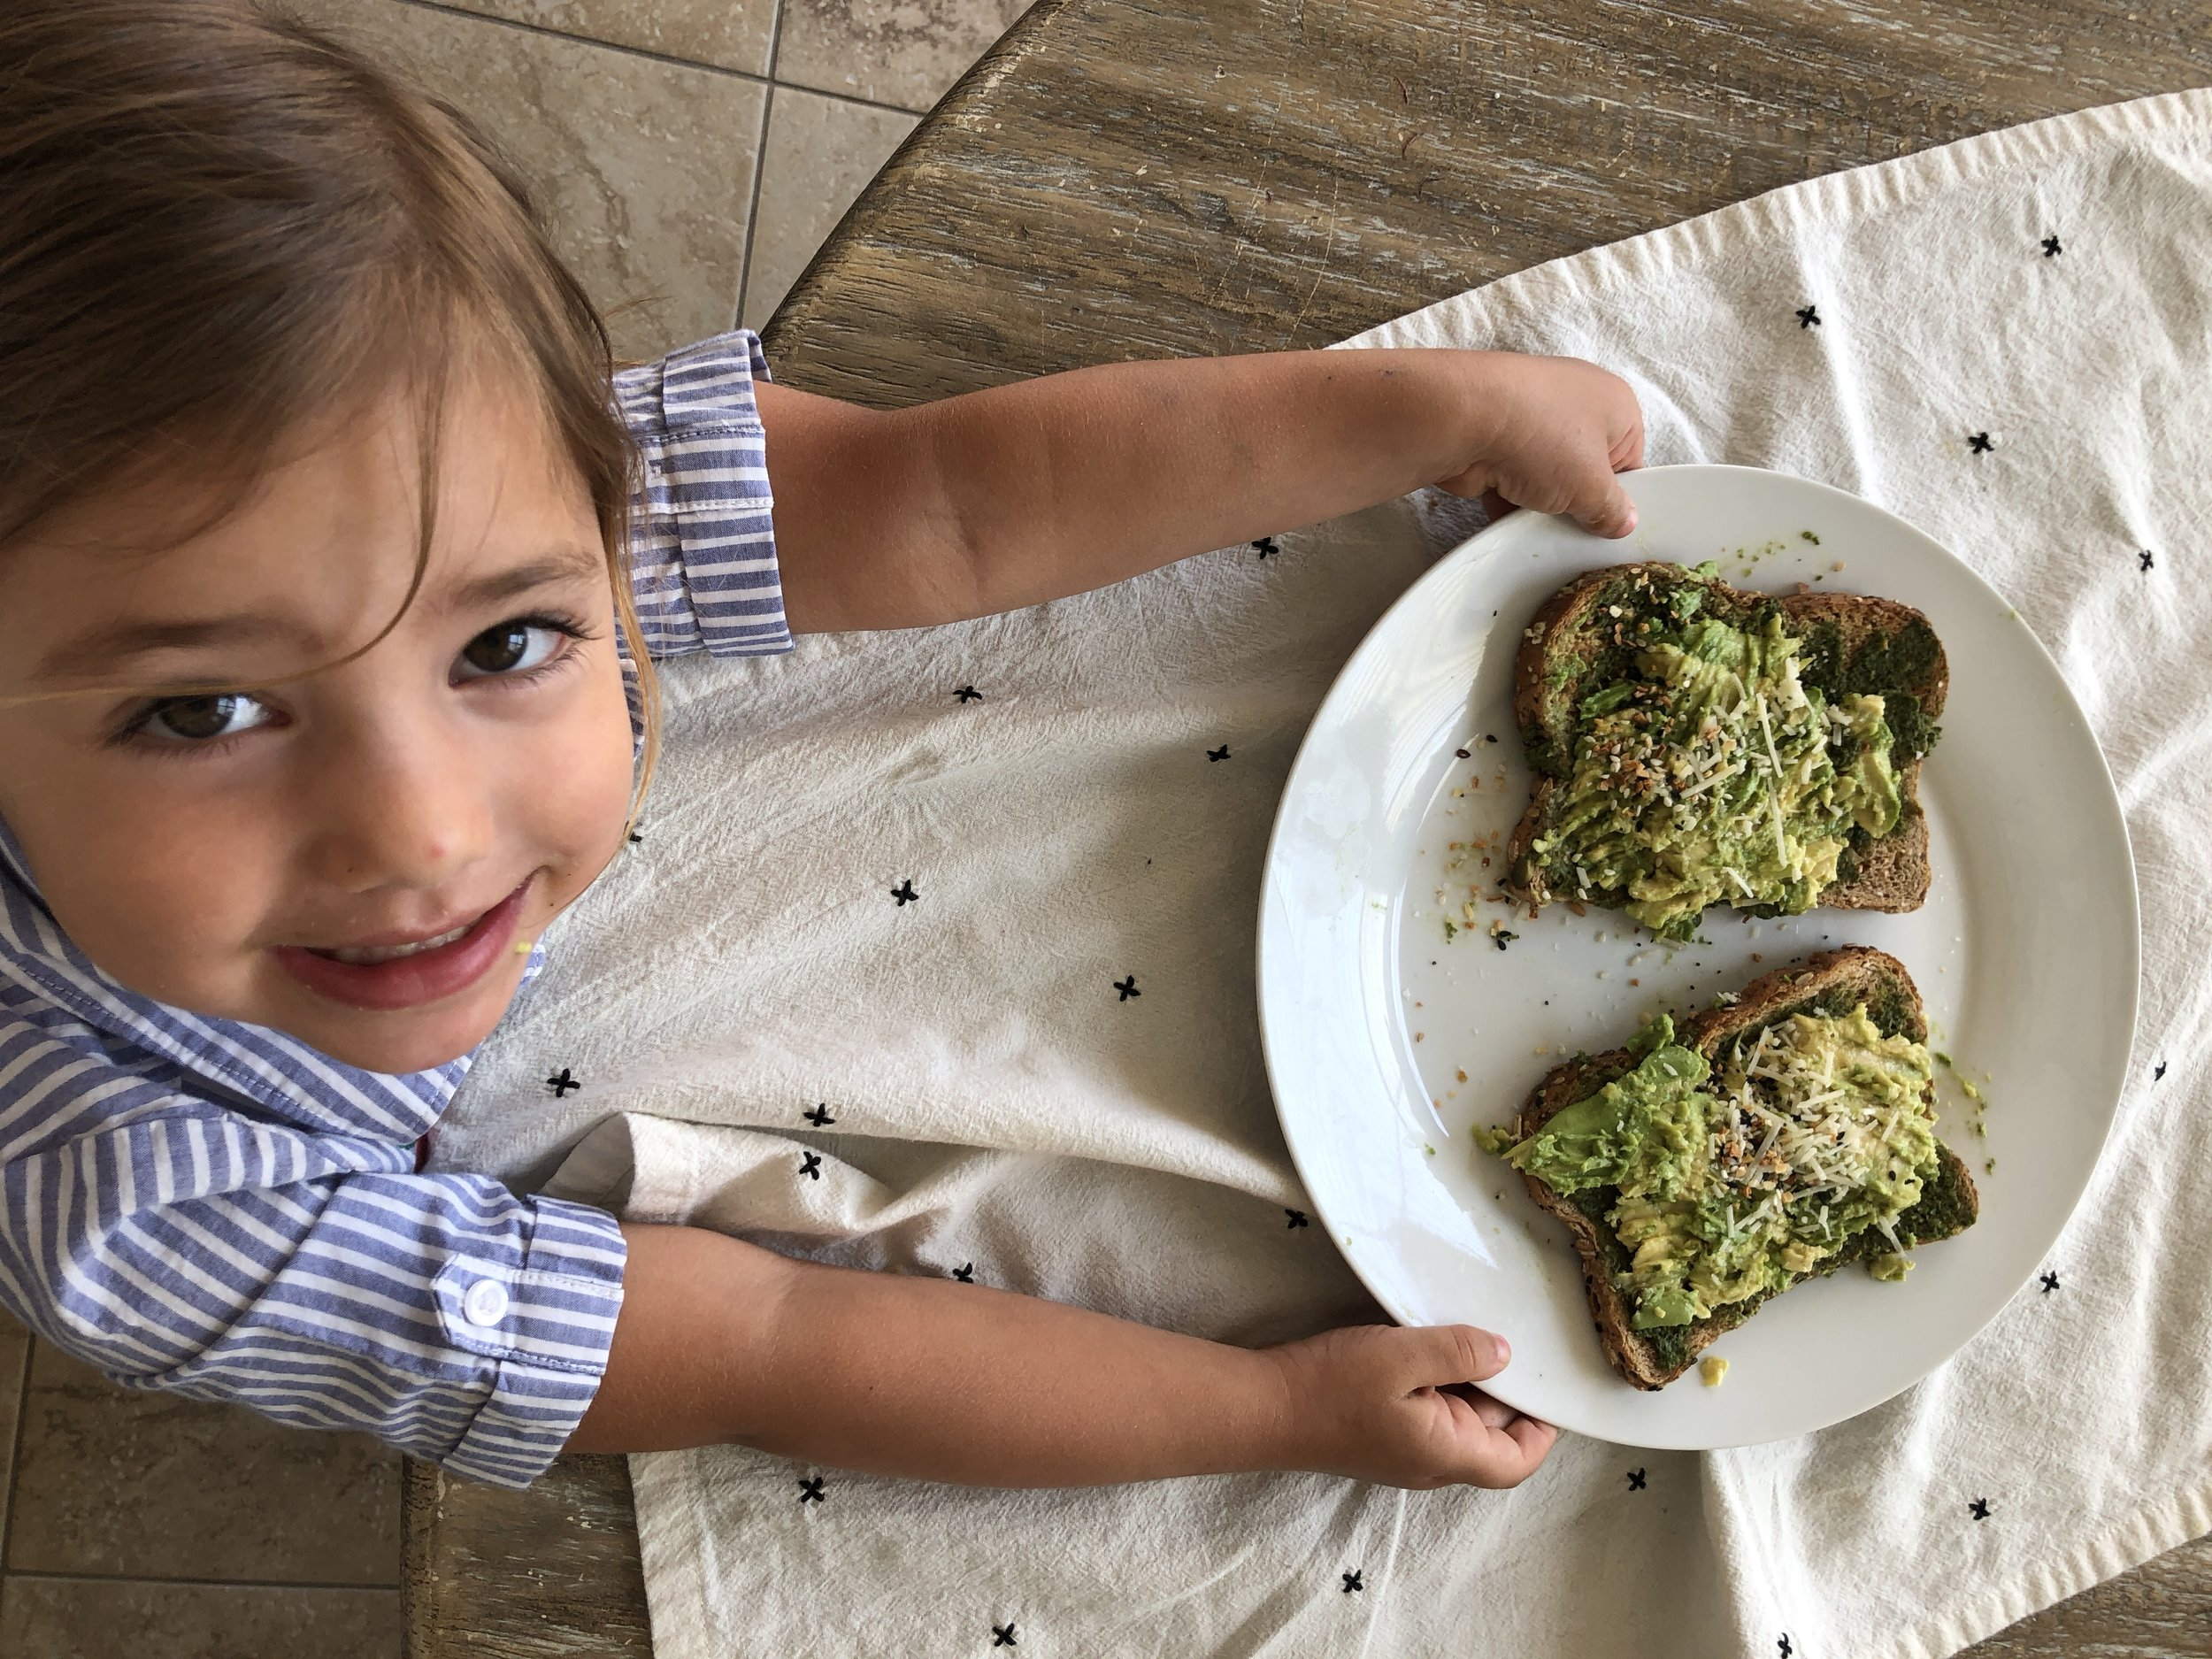 Kids can cook! Toddler made Avocado Toast. See the video www.ChefShayna.com